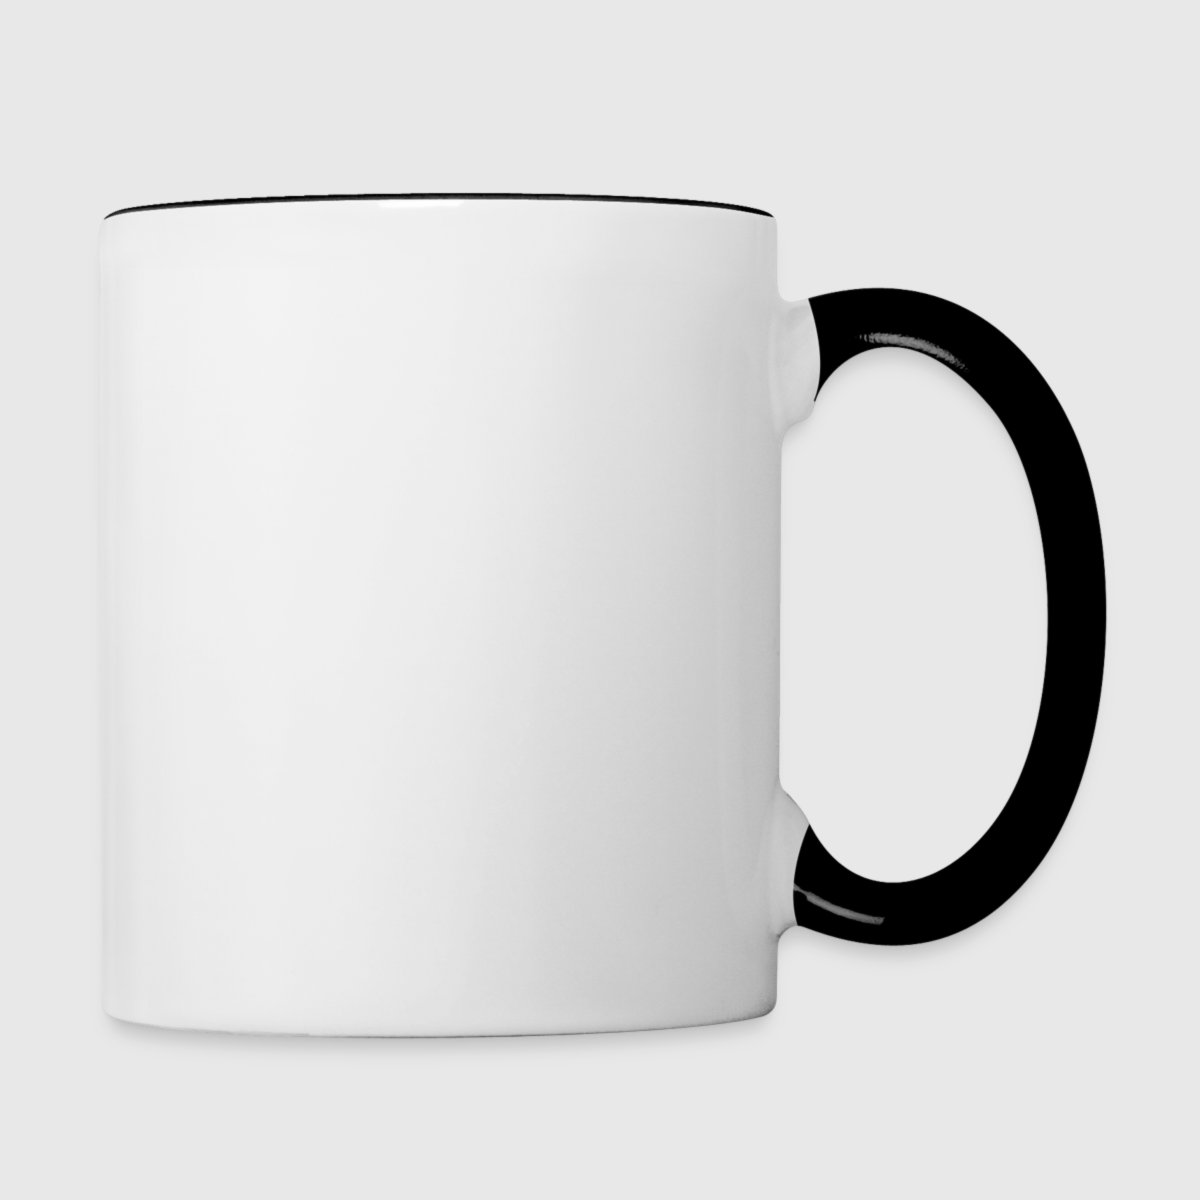 Contrast Coffee Mug - Right